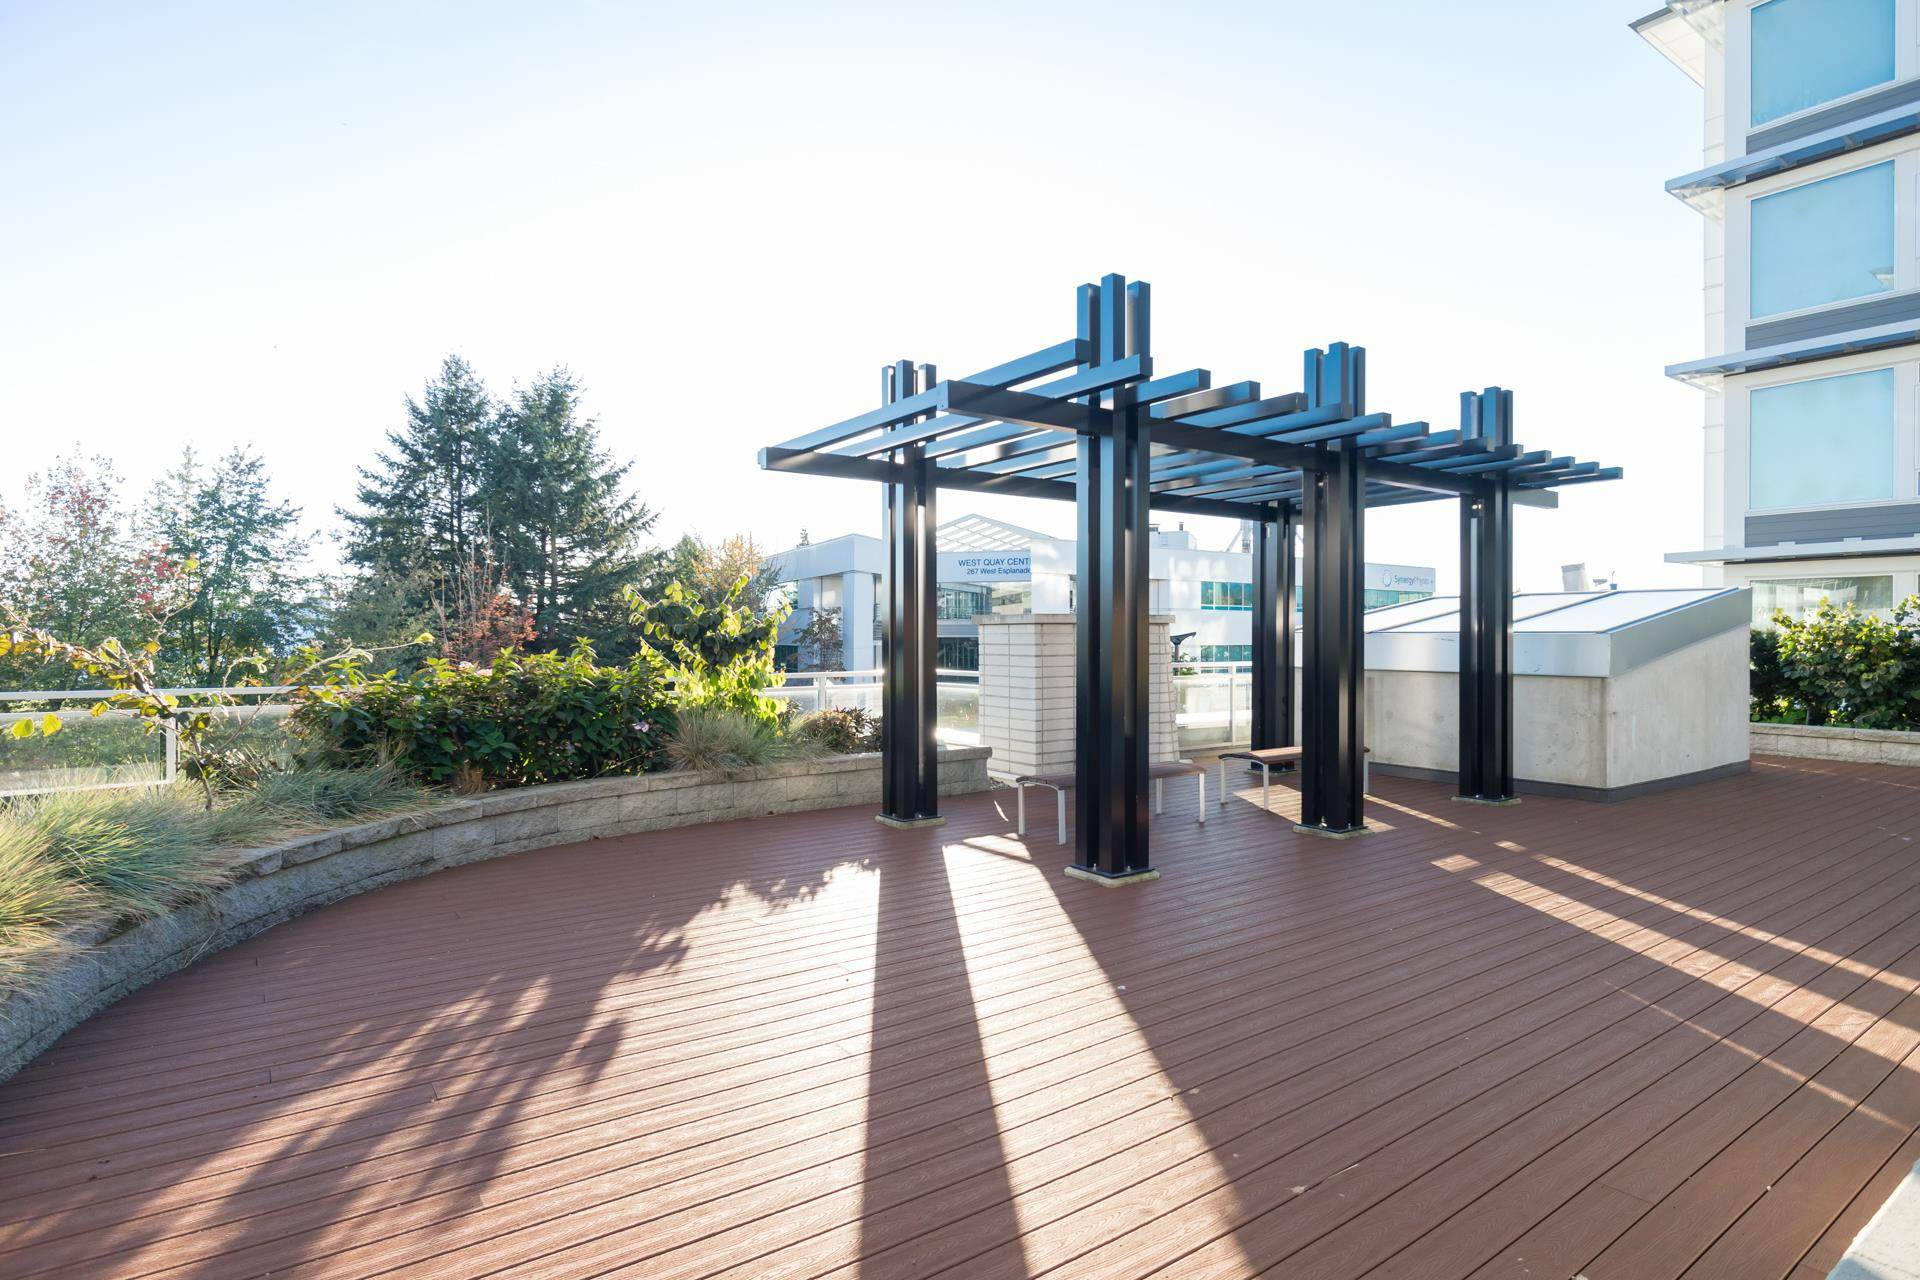 207 255 W 1ST STREET - Lower Lonsdale Apartment/Condo for sale, 2 Bedrooms (R2603882) - #31